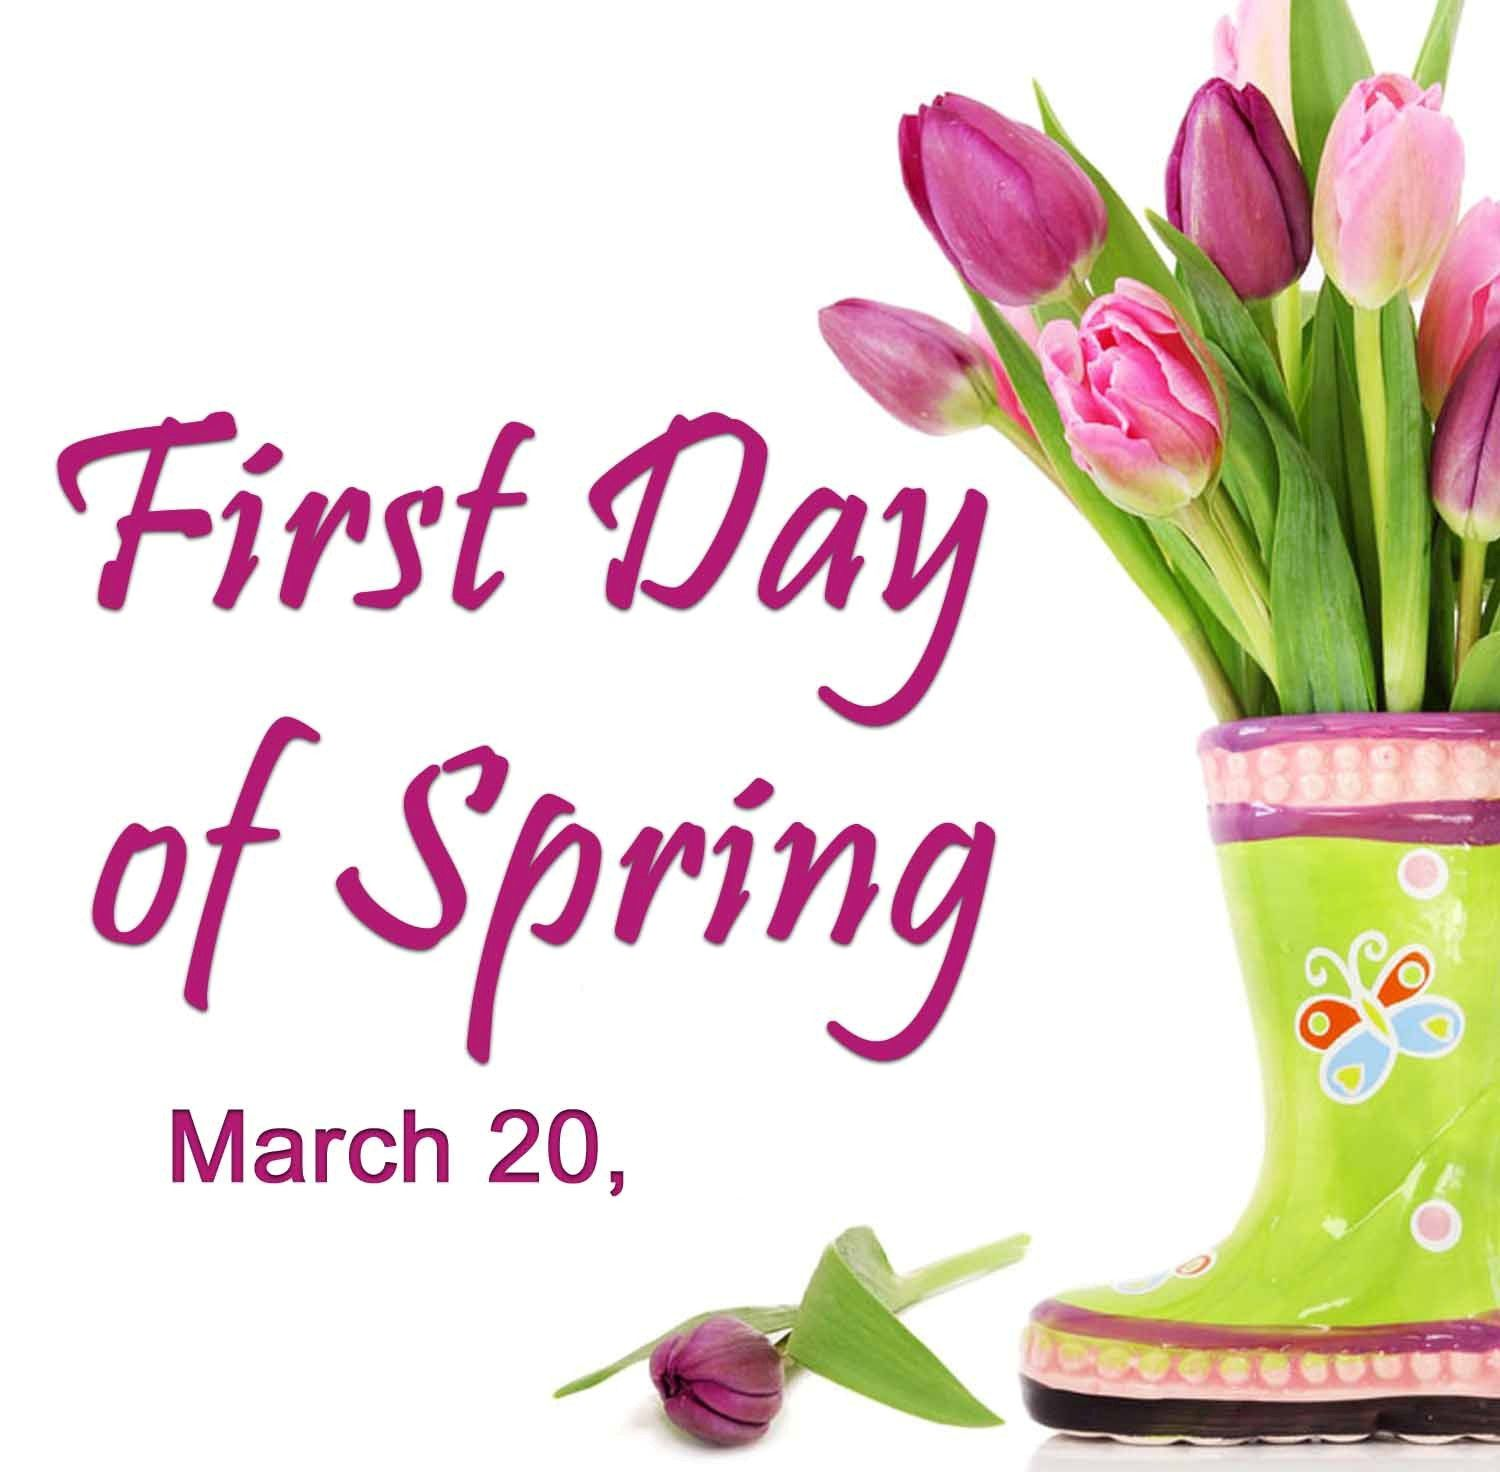 First Day Of Spring. And Jean's birthday. HAPPY BIRTHDAY